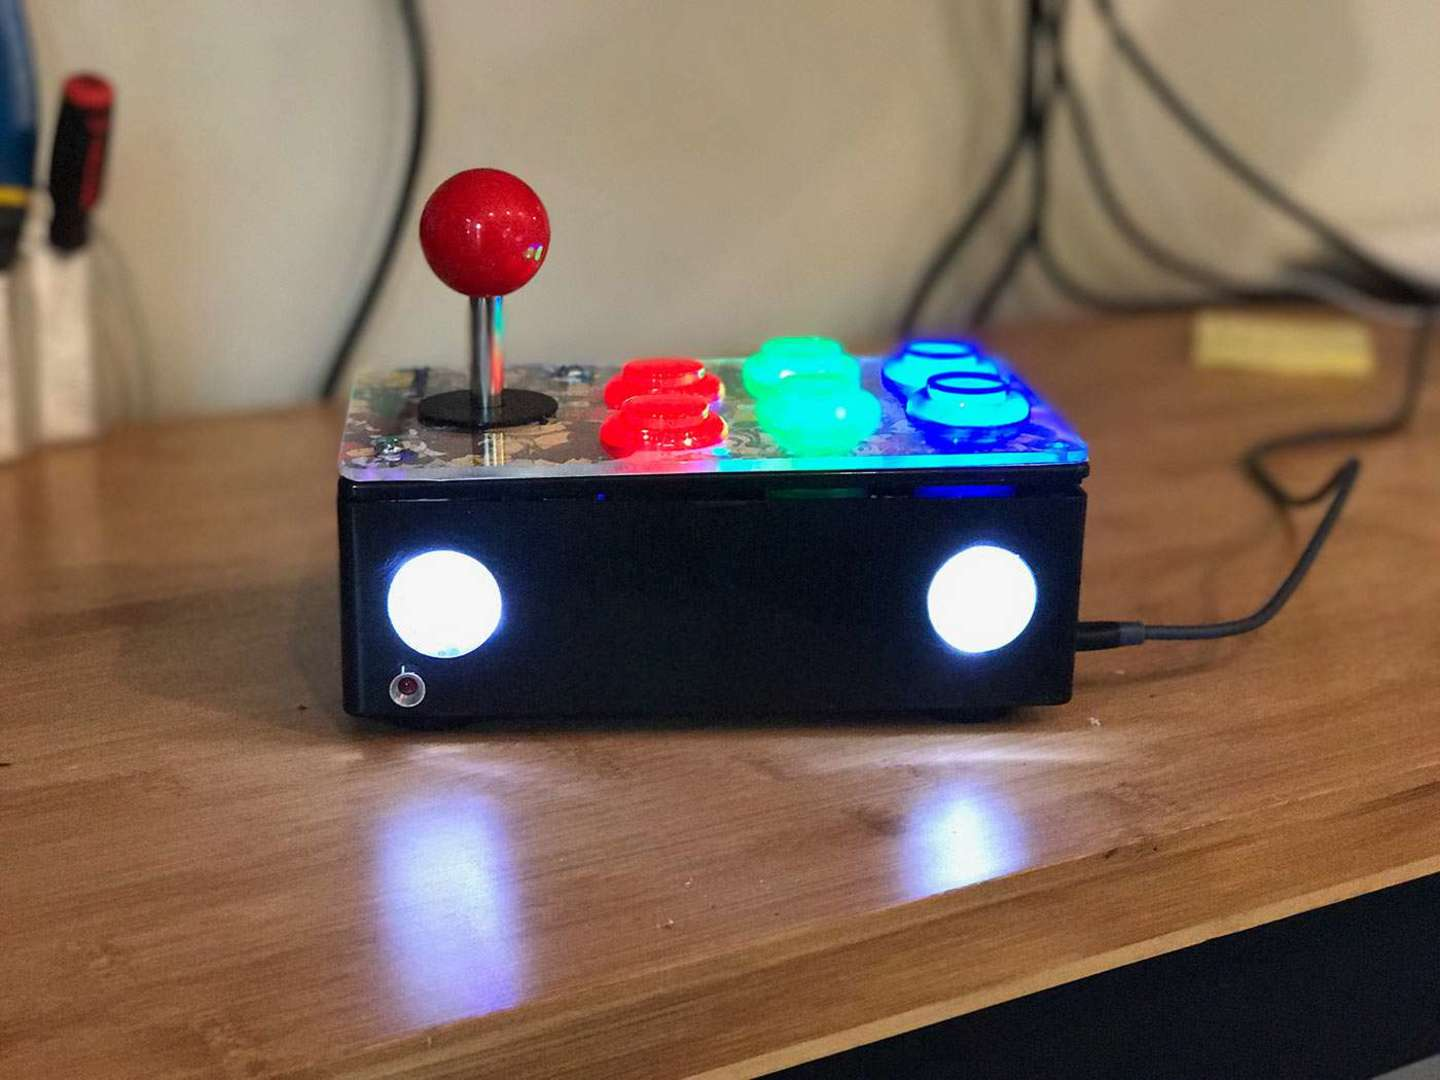 The Retrobox sitting on a table